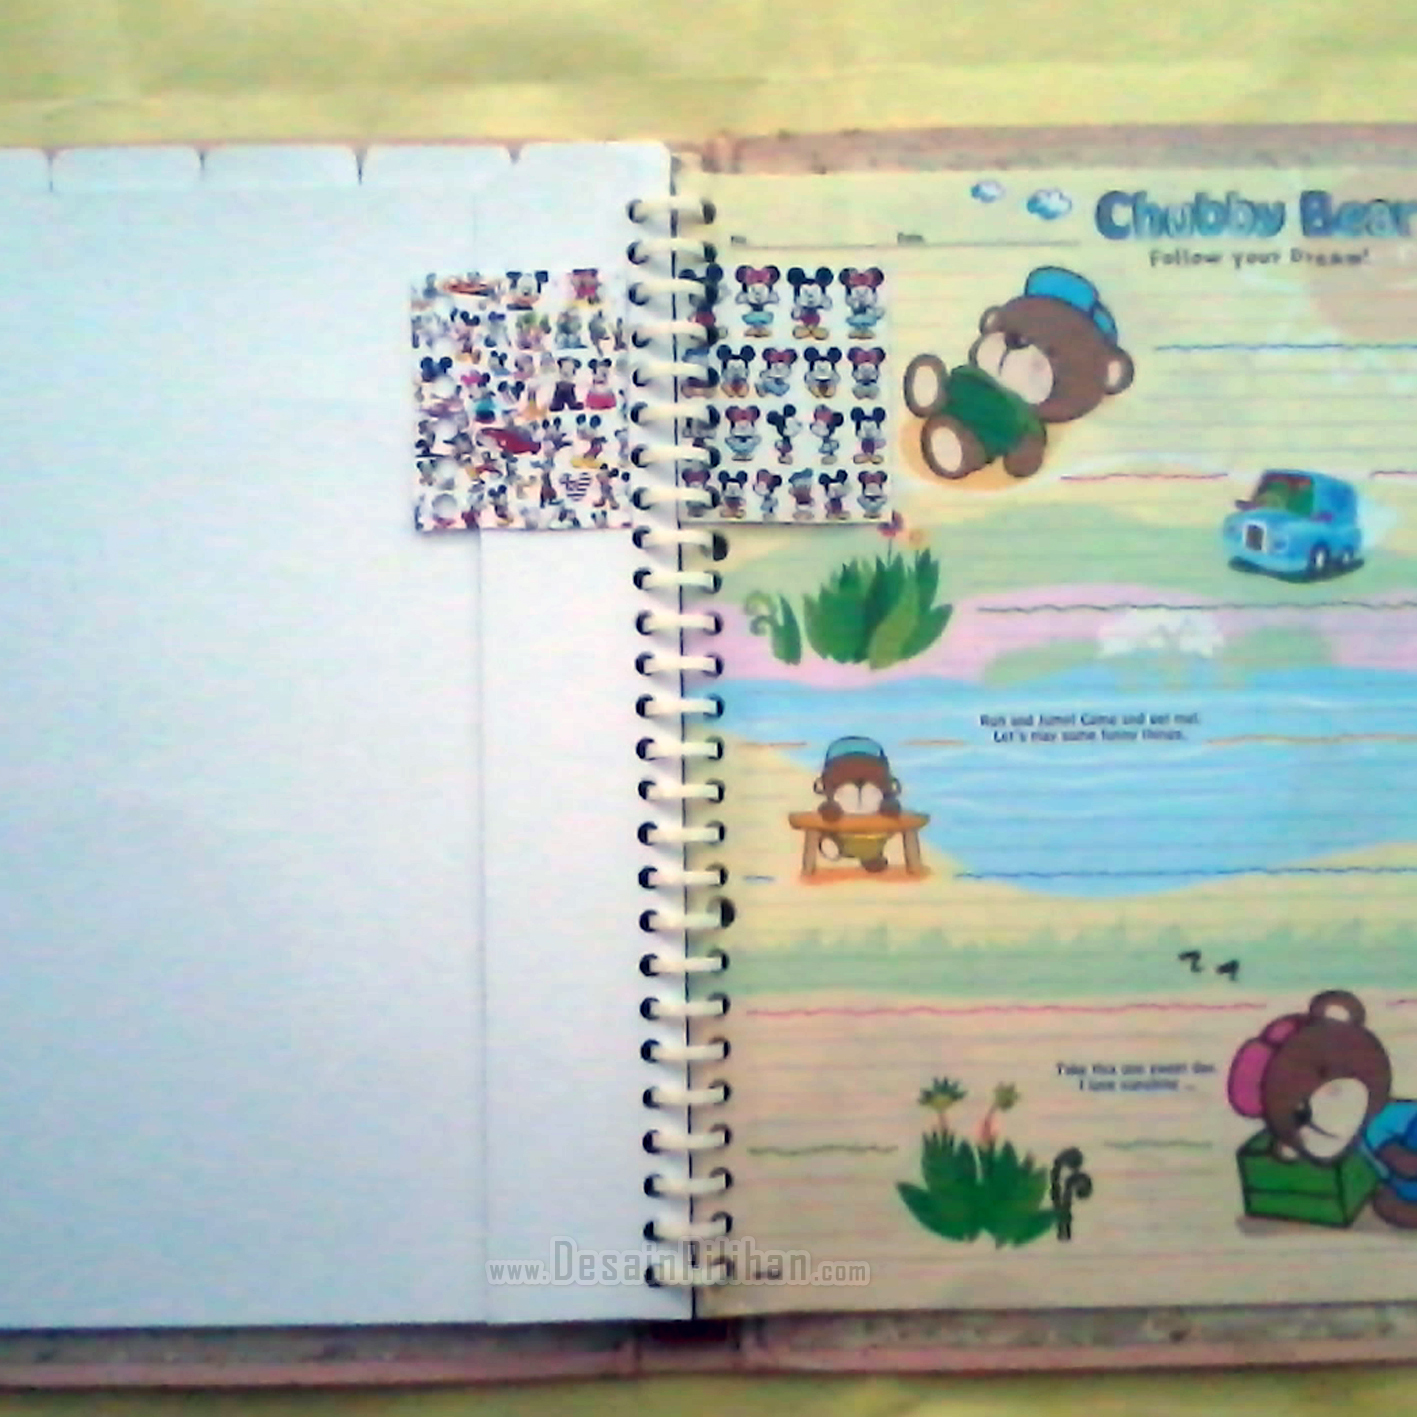 MINI DIVIDER BINDER CUSTOM, PEMBATAS BINDER MINI MINNIE MICKEY MOUSE